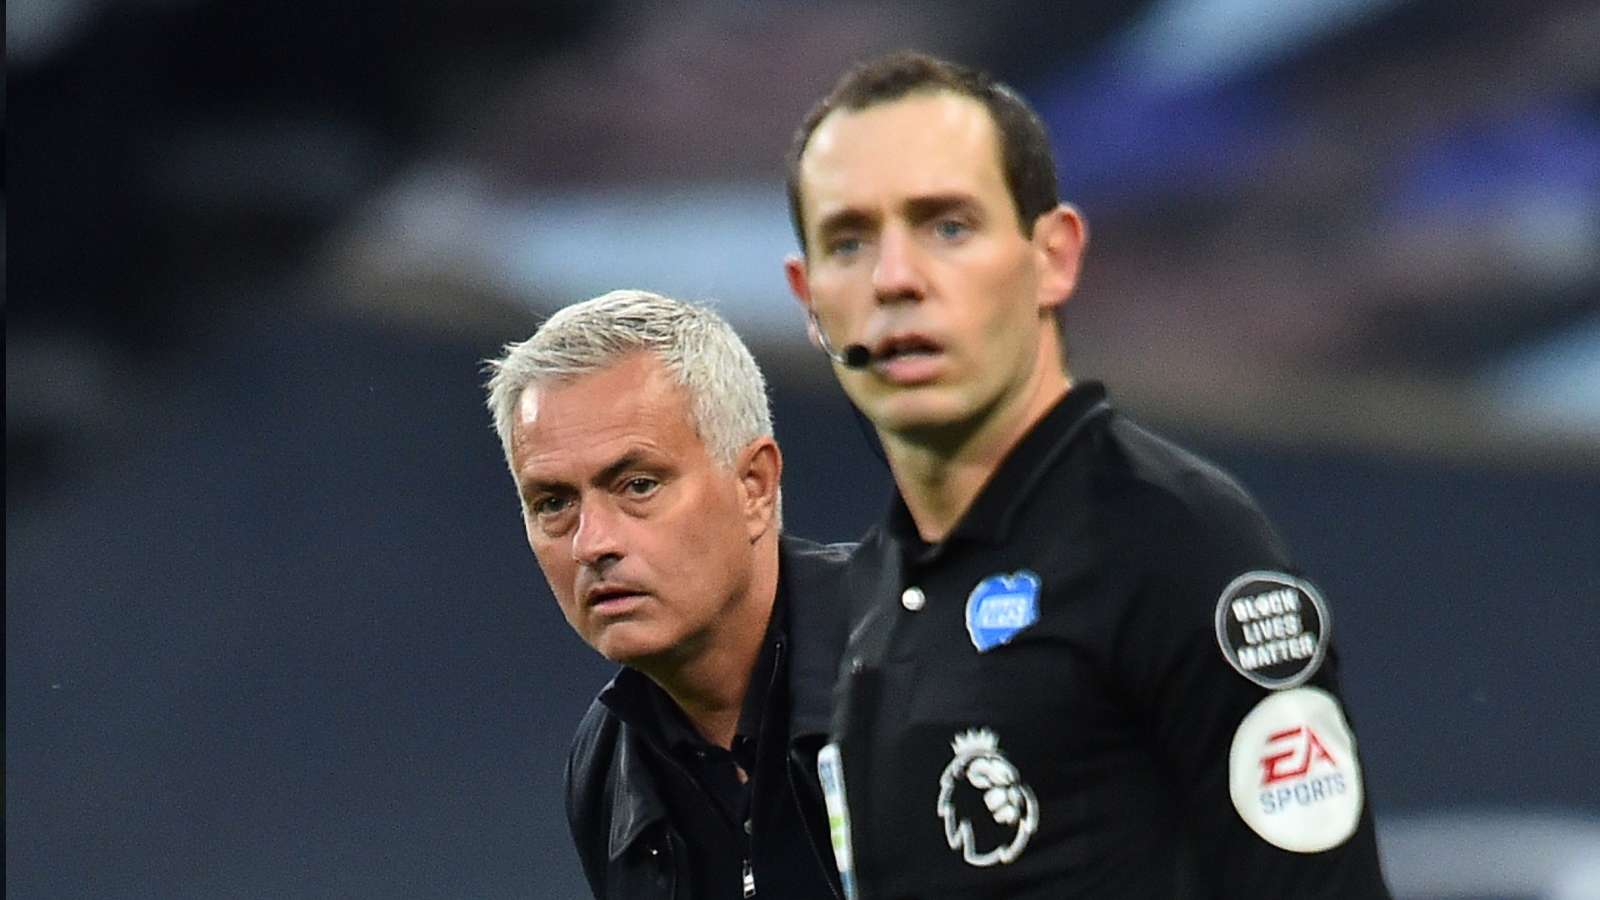 Mourinho Spurs referee 2020